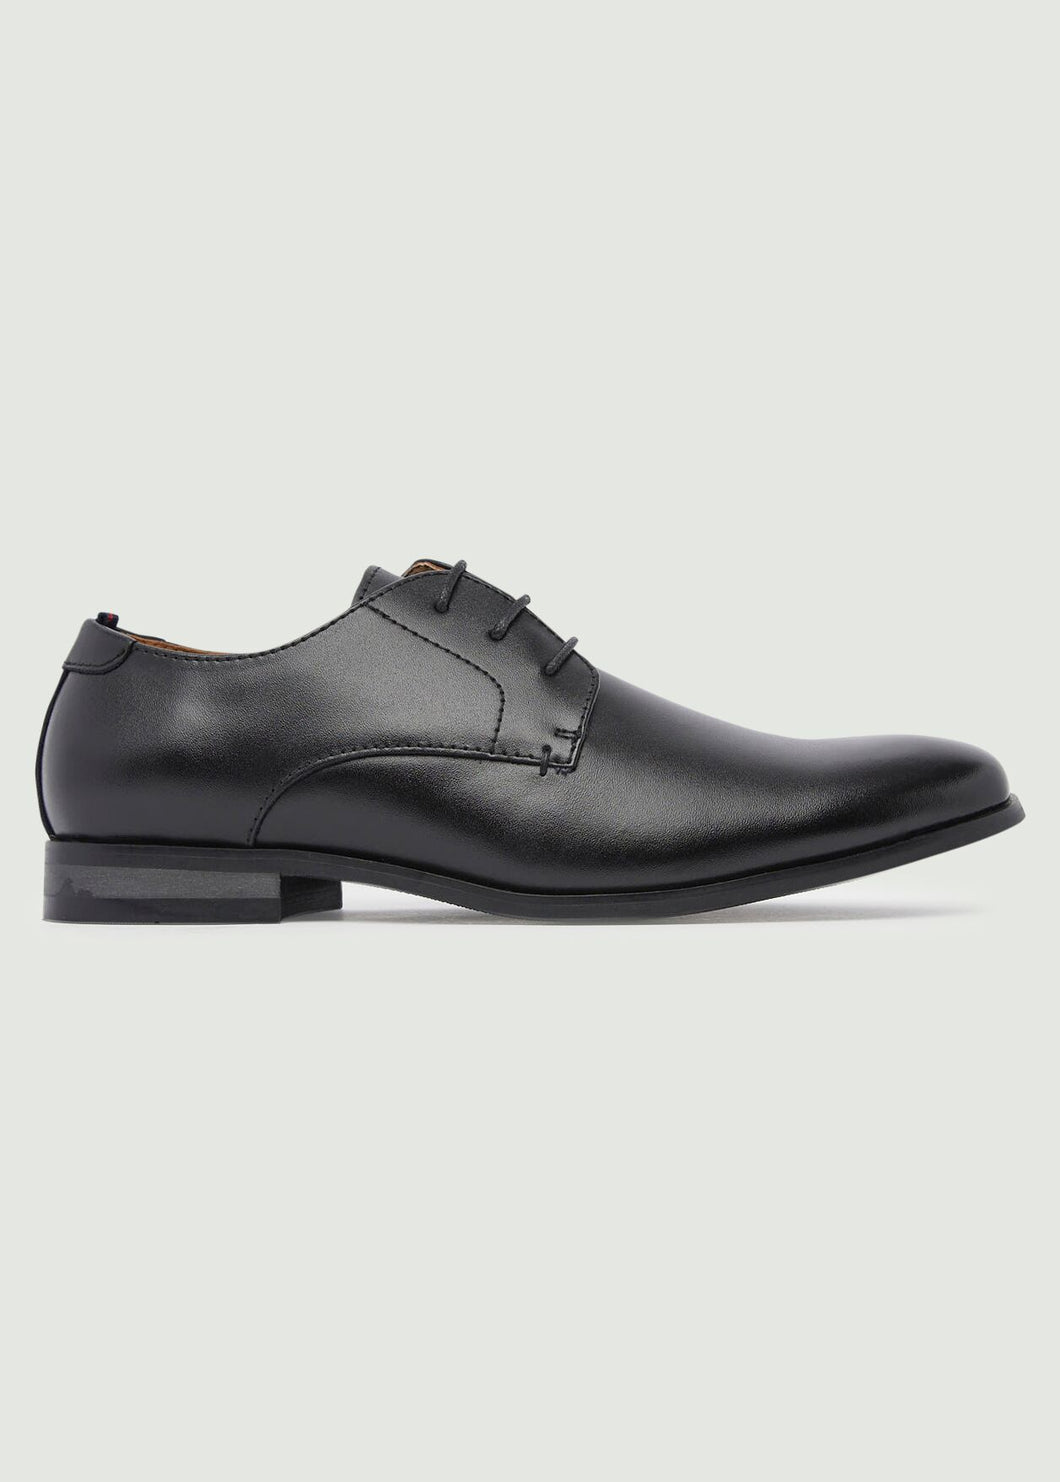 Curtis Plain Toe Derby Shoes - Black